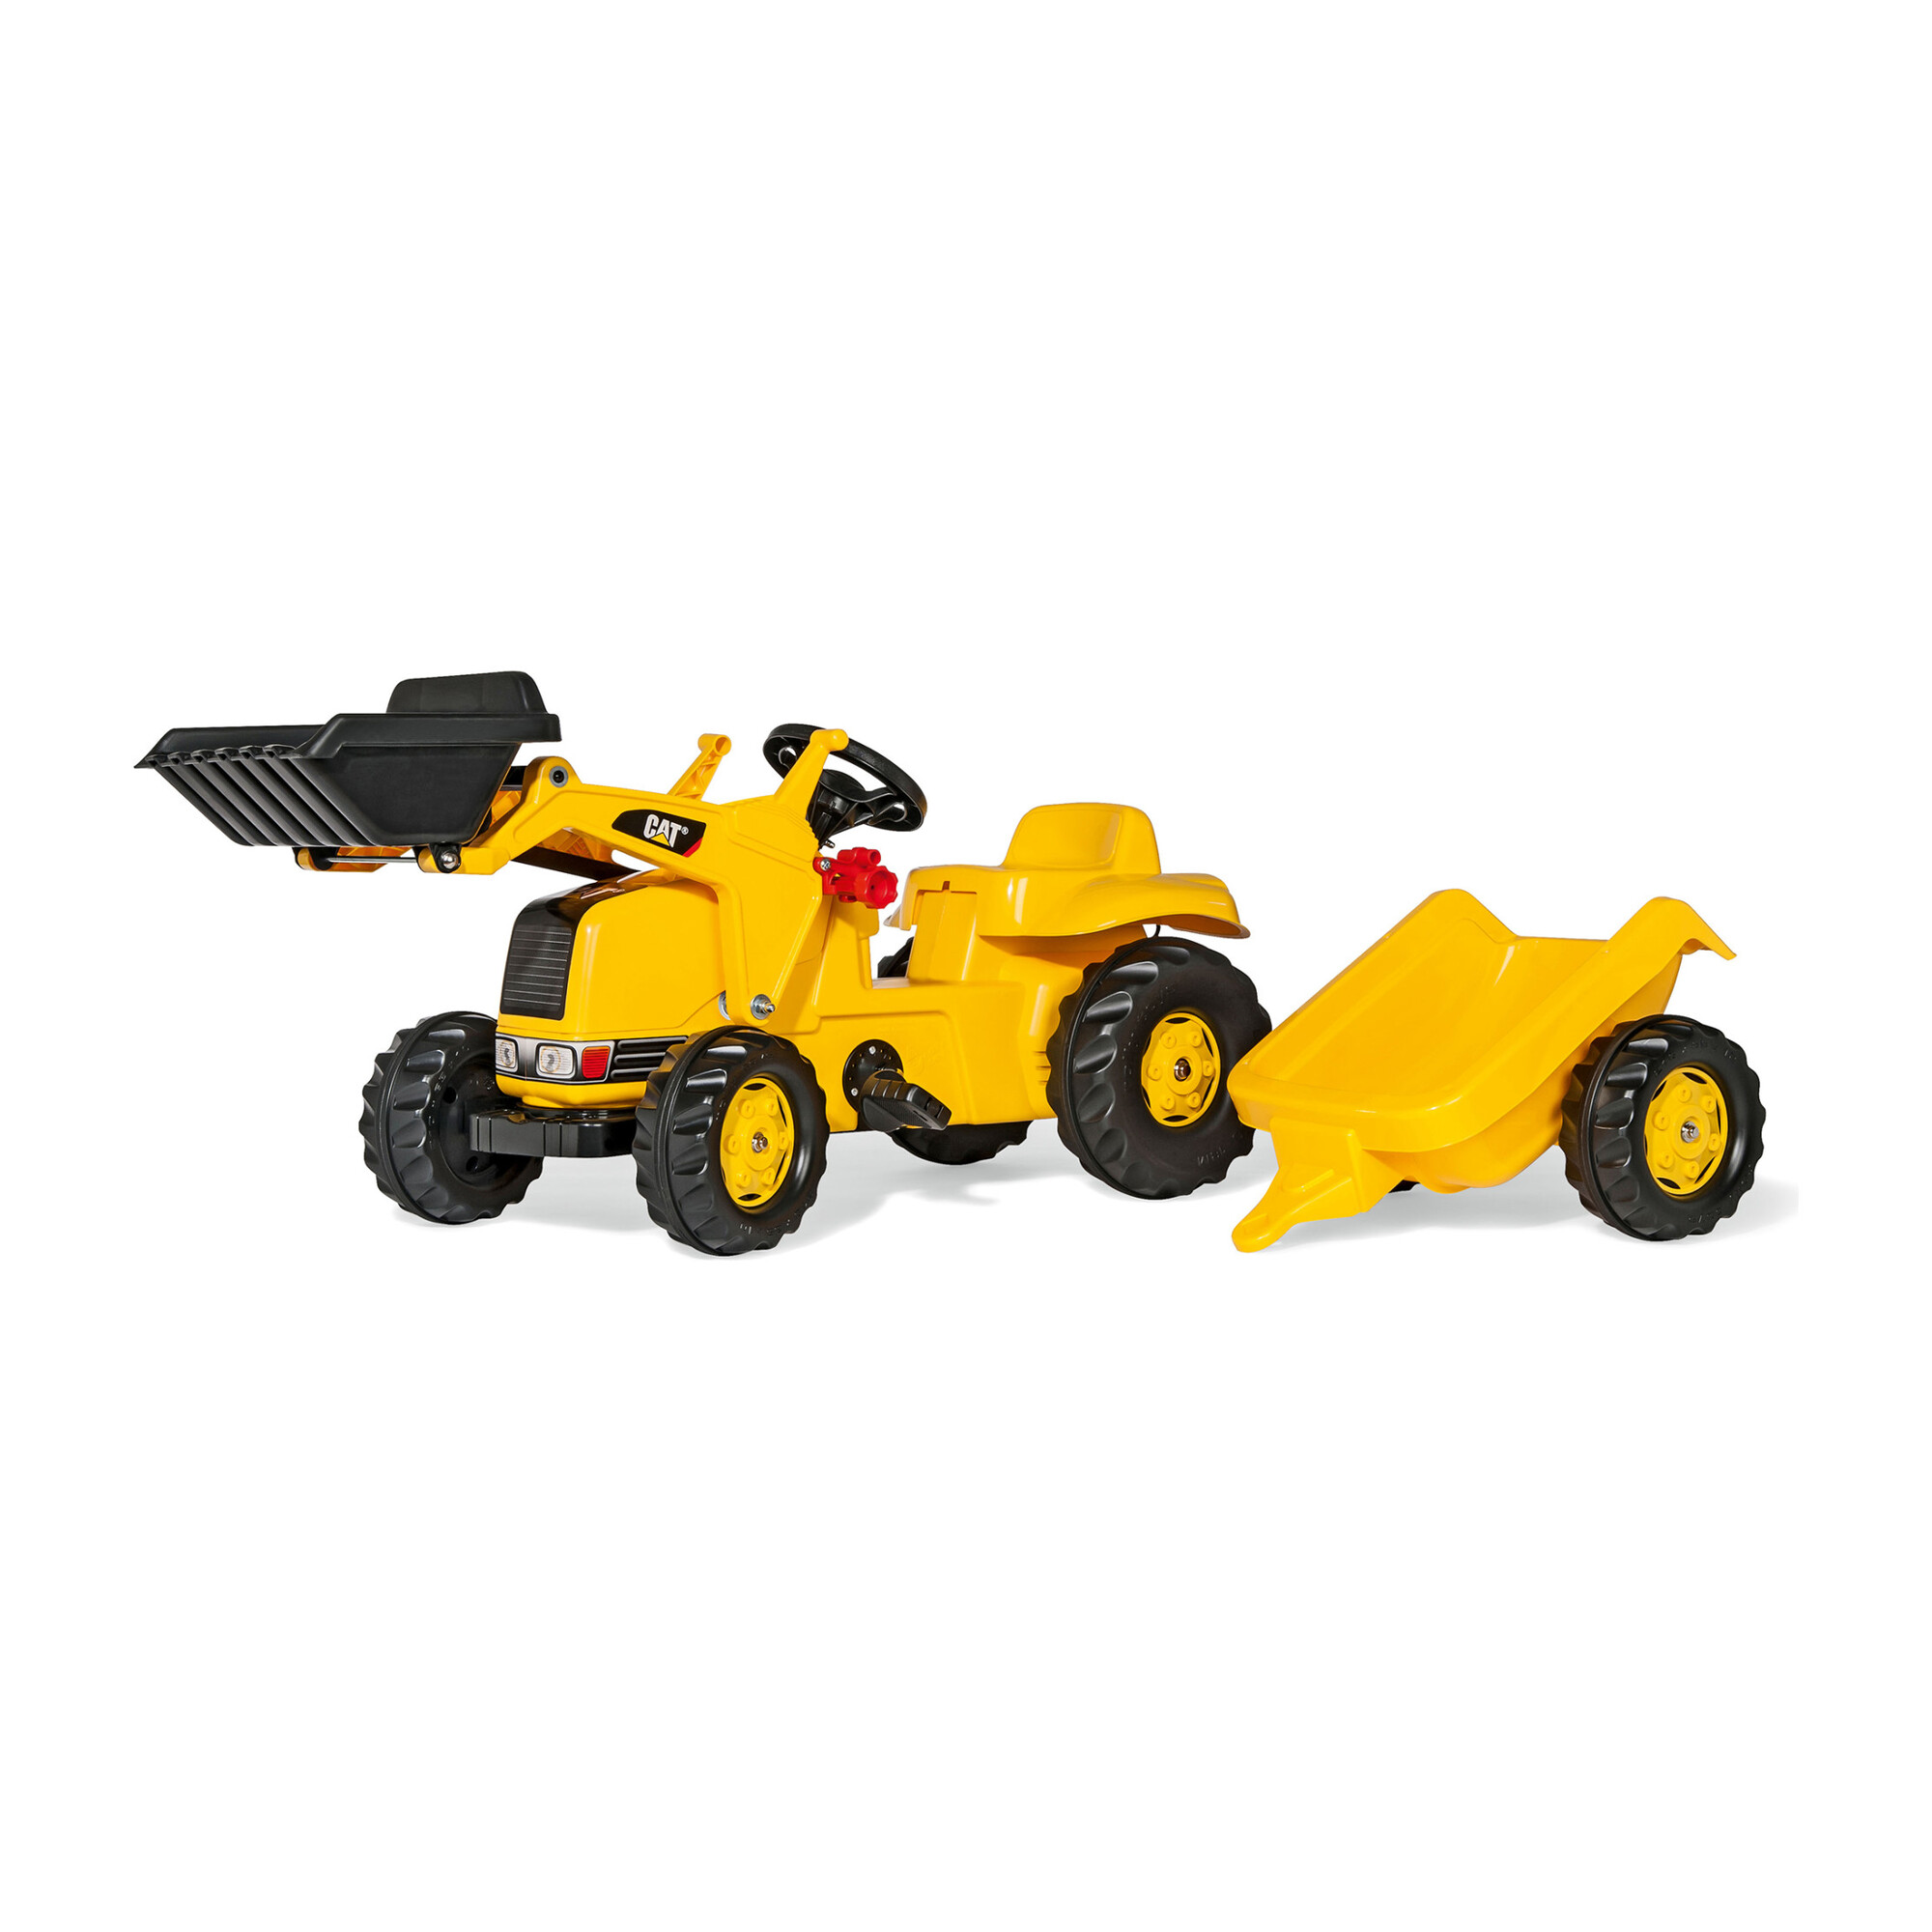 CAT Kid Tractor with Trailer